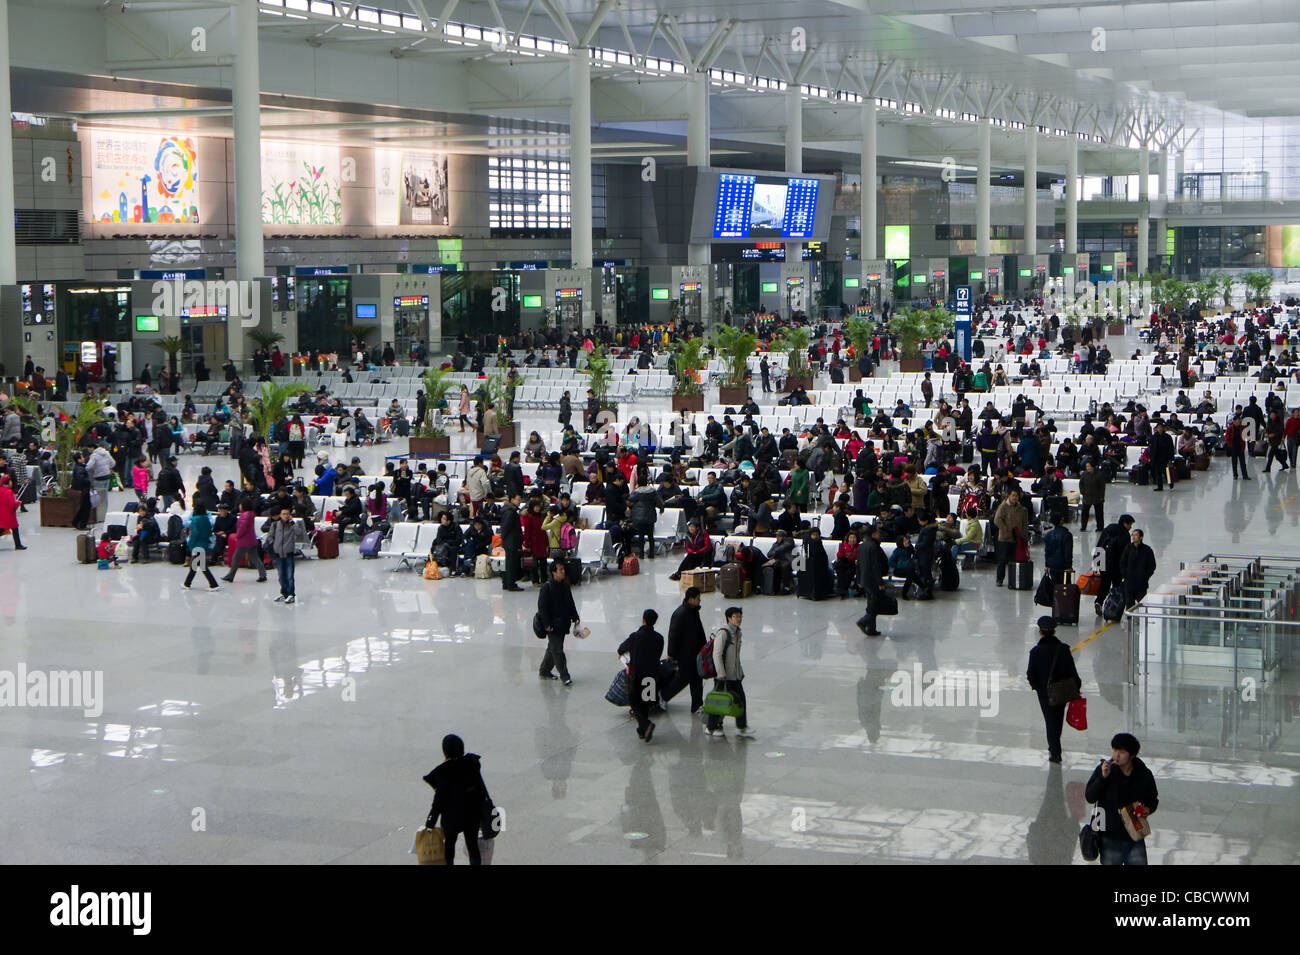 Waiting room for high speed trains at the Shanghai Hongqiao Railway Station, China - Stock Image